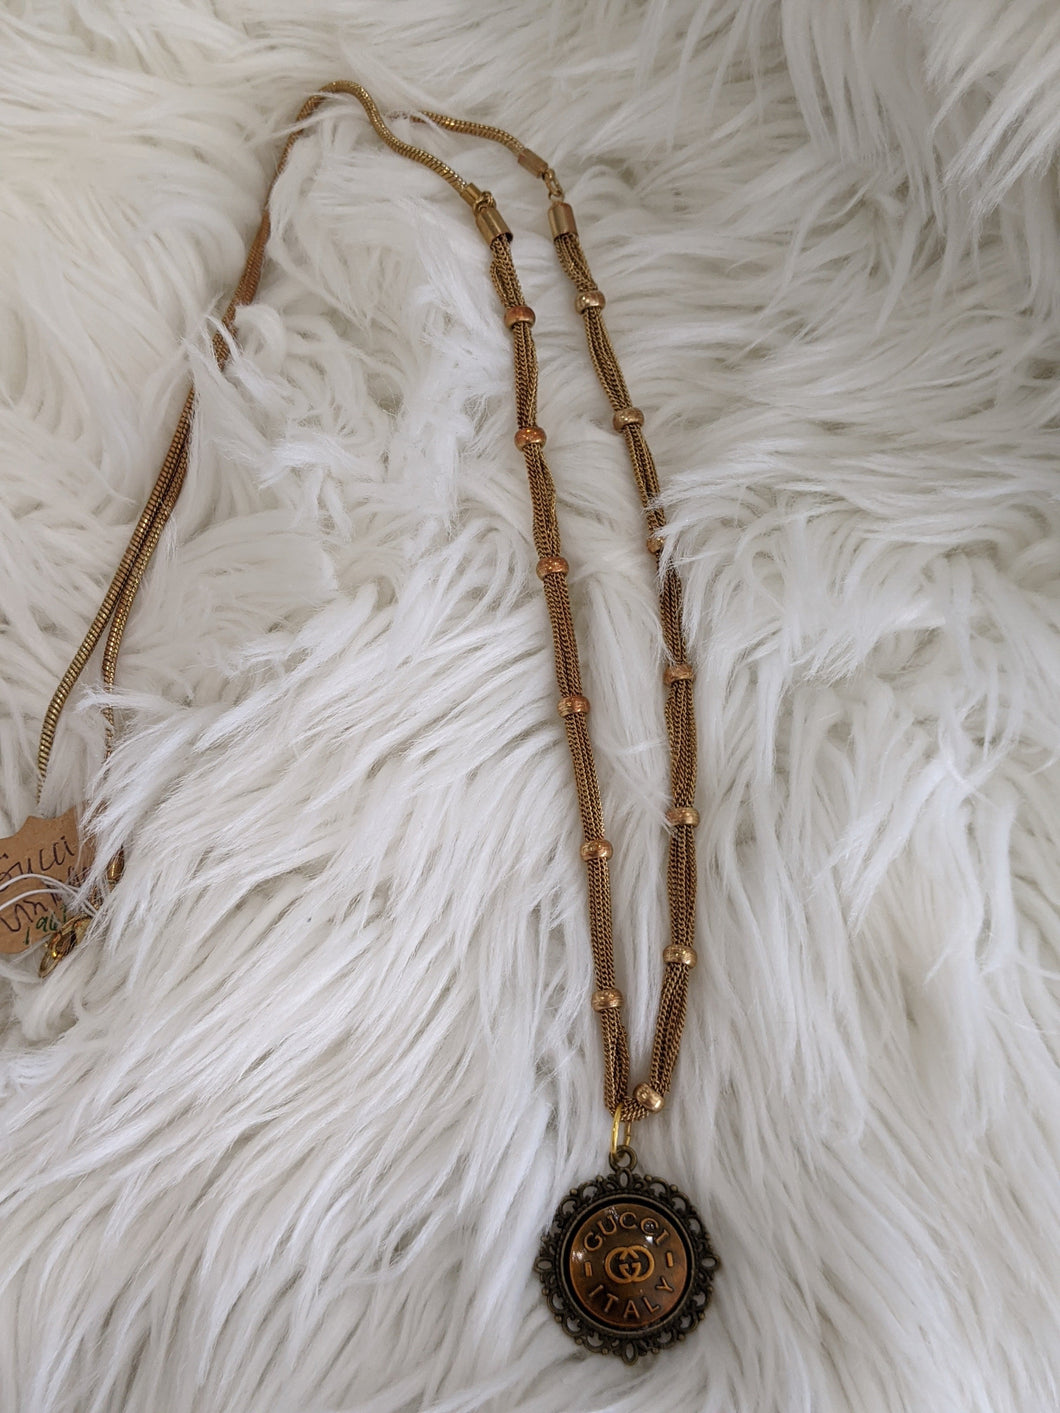 TS111 - Gucci on Vintage Chain